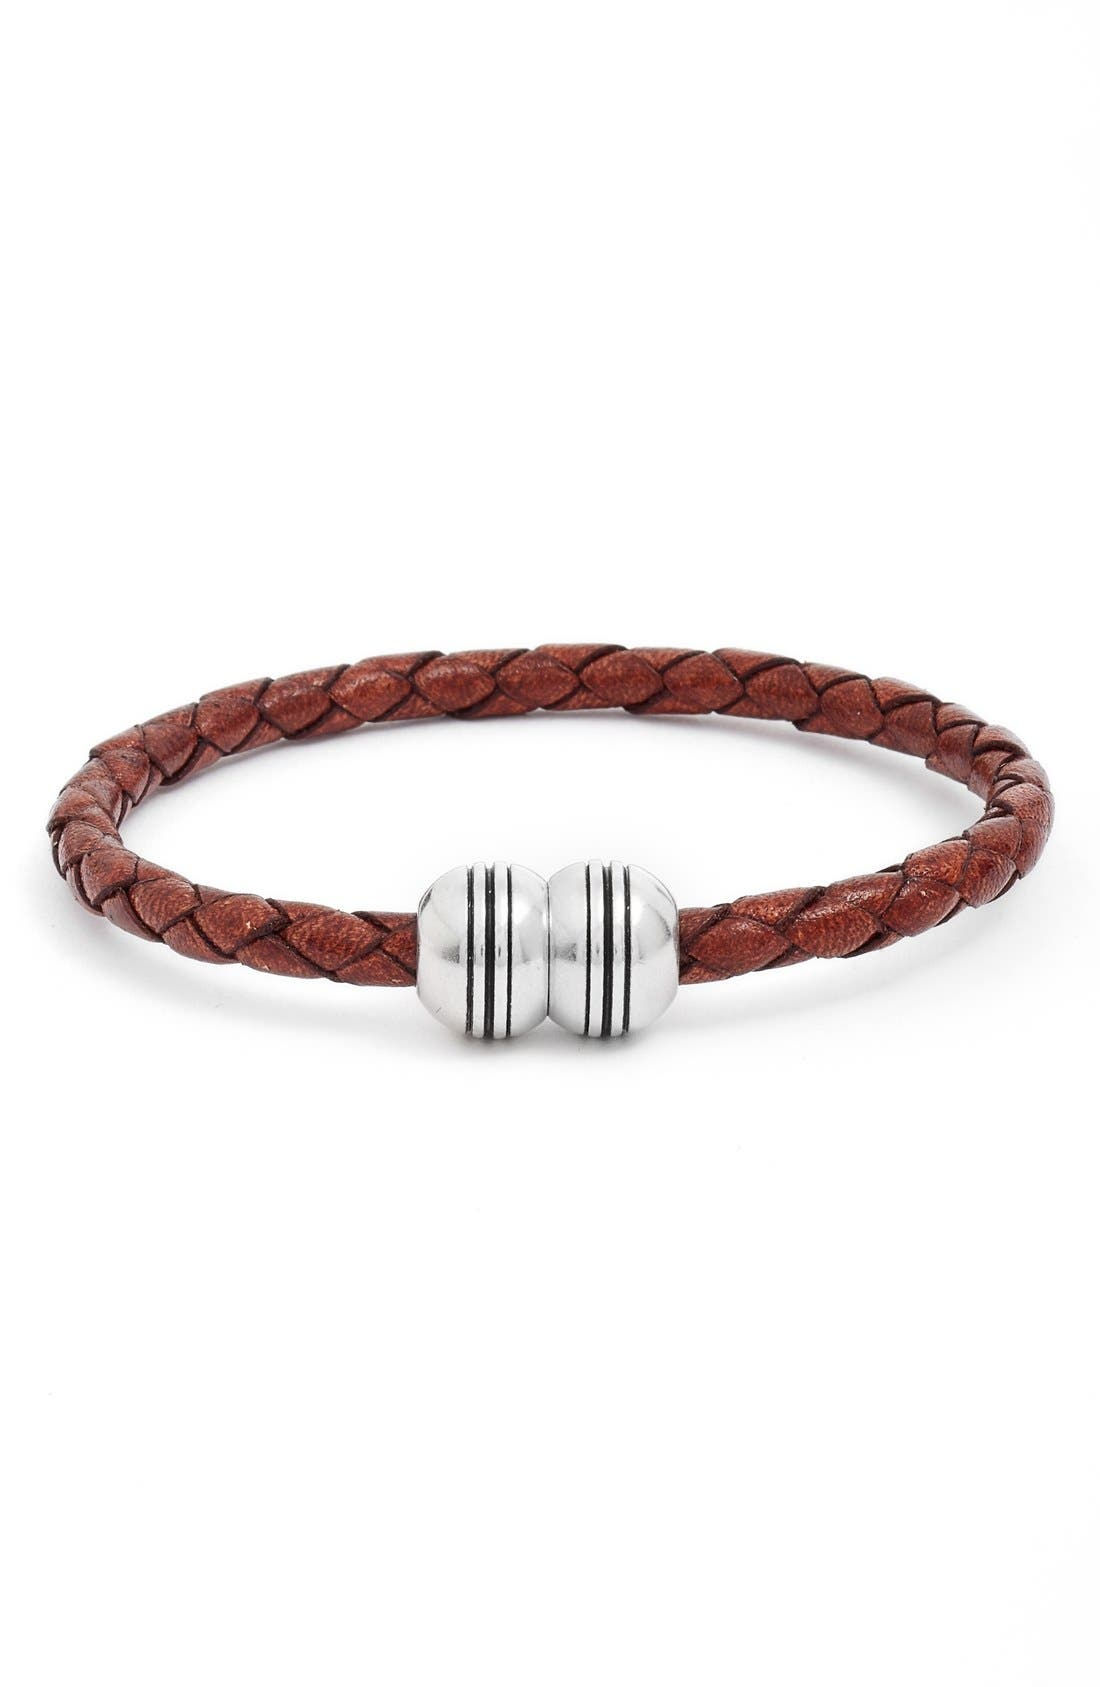 Braided Leather Bracelet,                         Main,                         color, 210